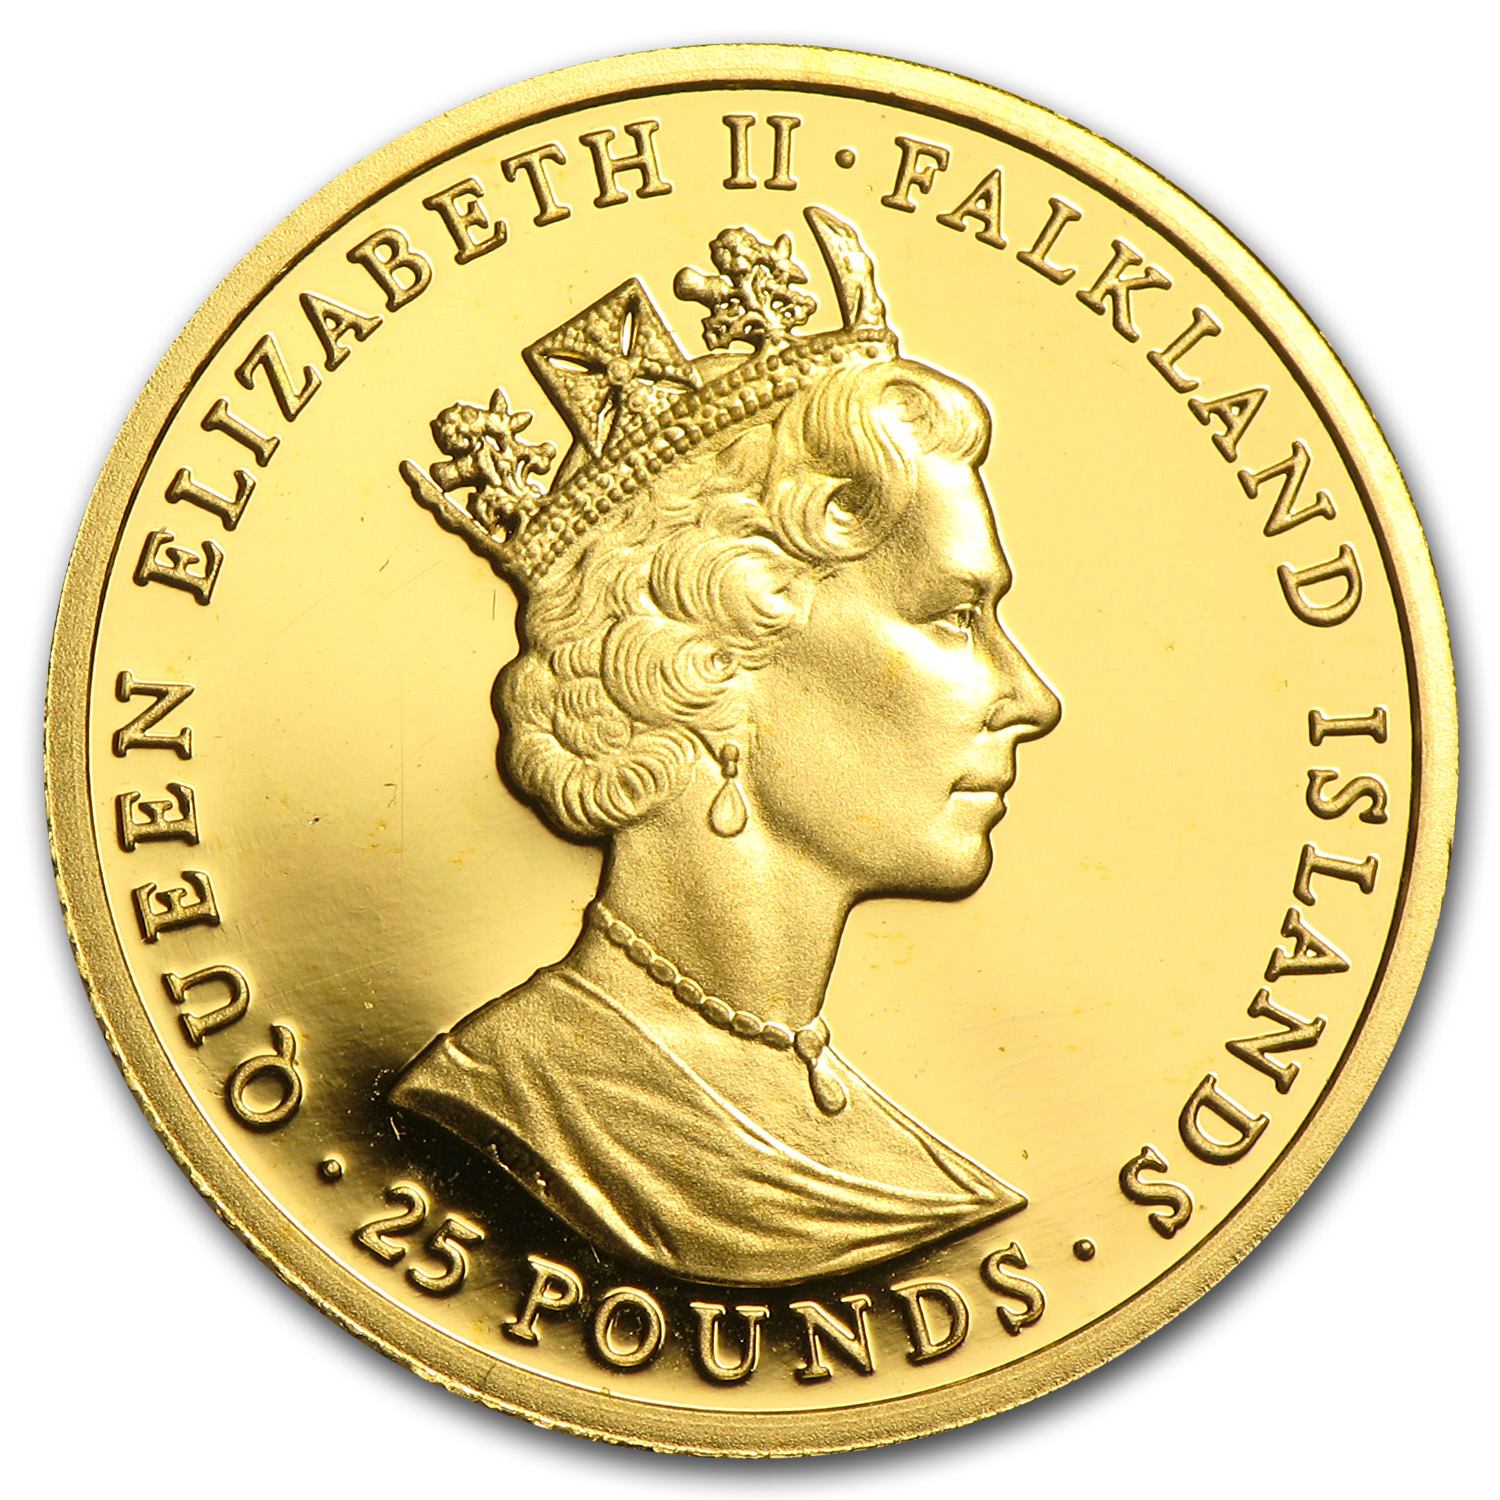 1992 Falkland Islands Gold 25 Pounds Proof